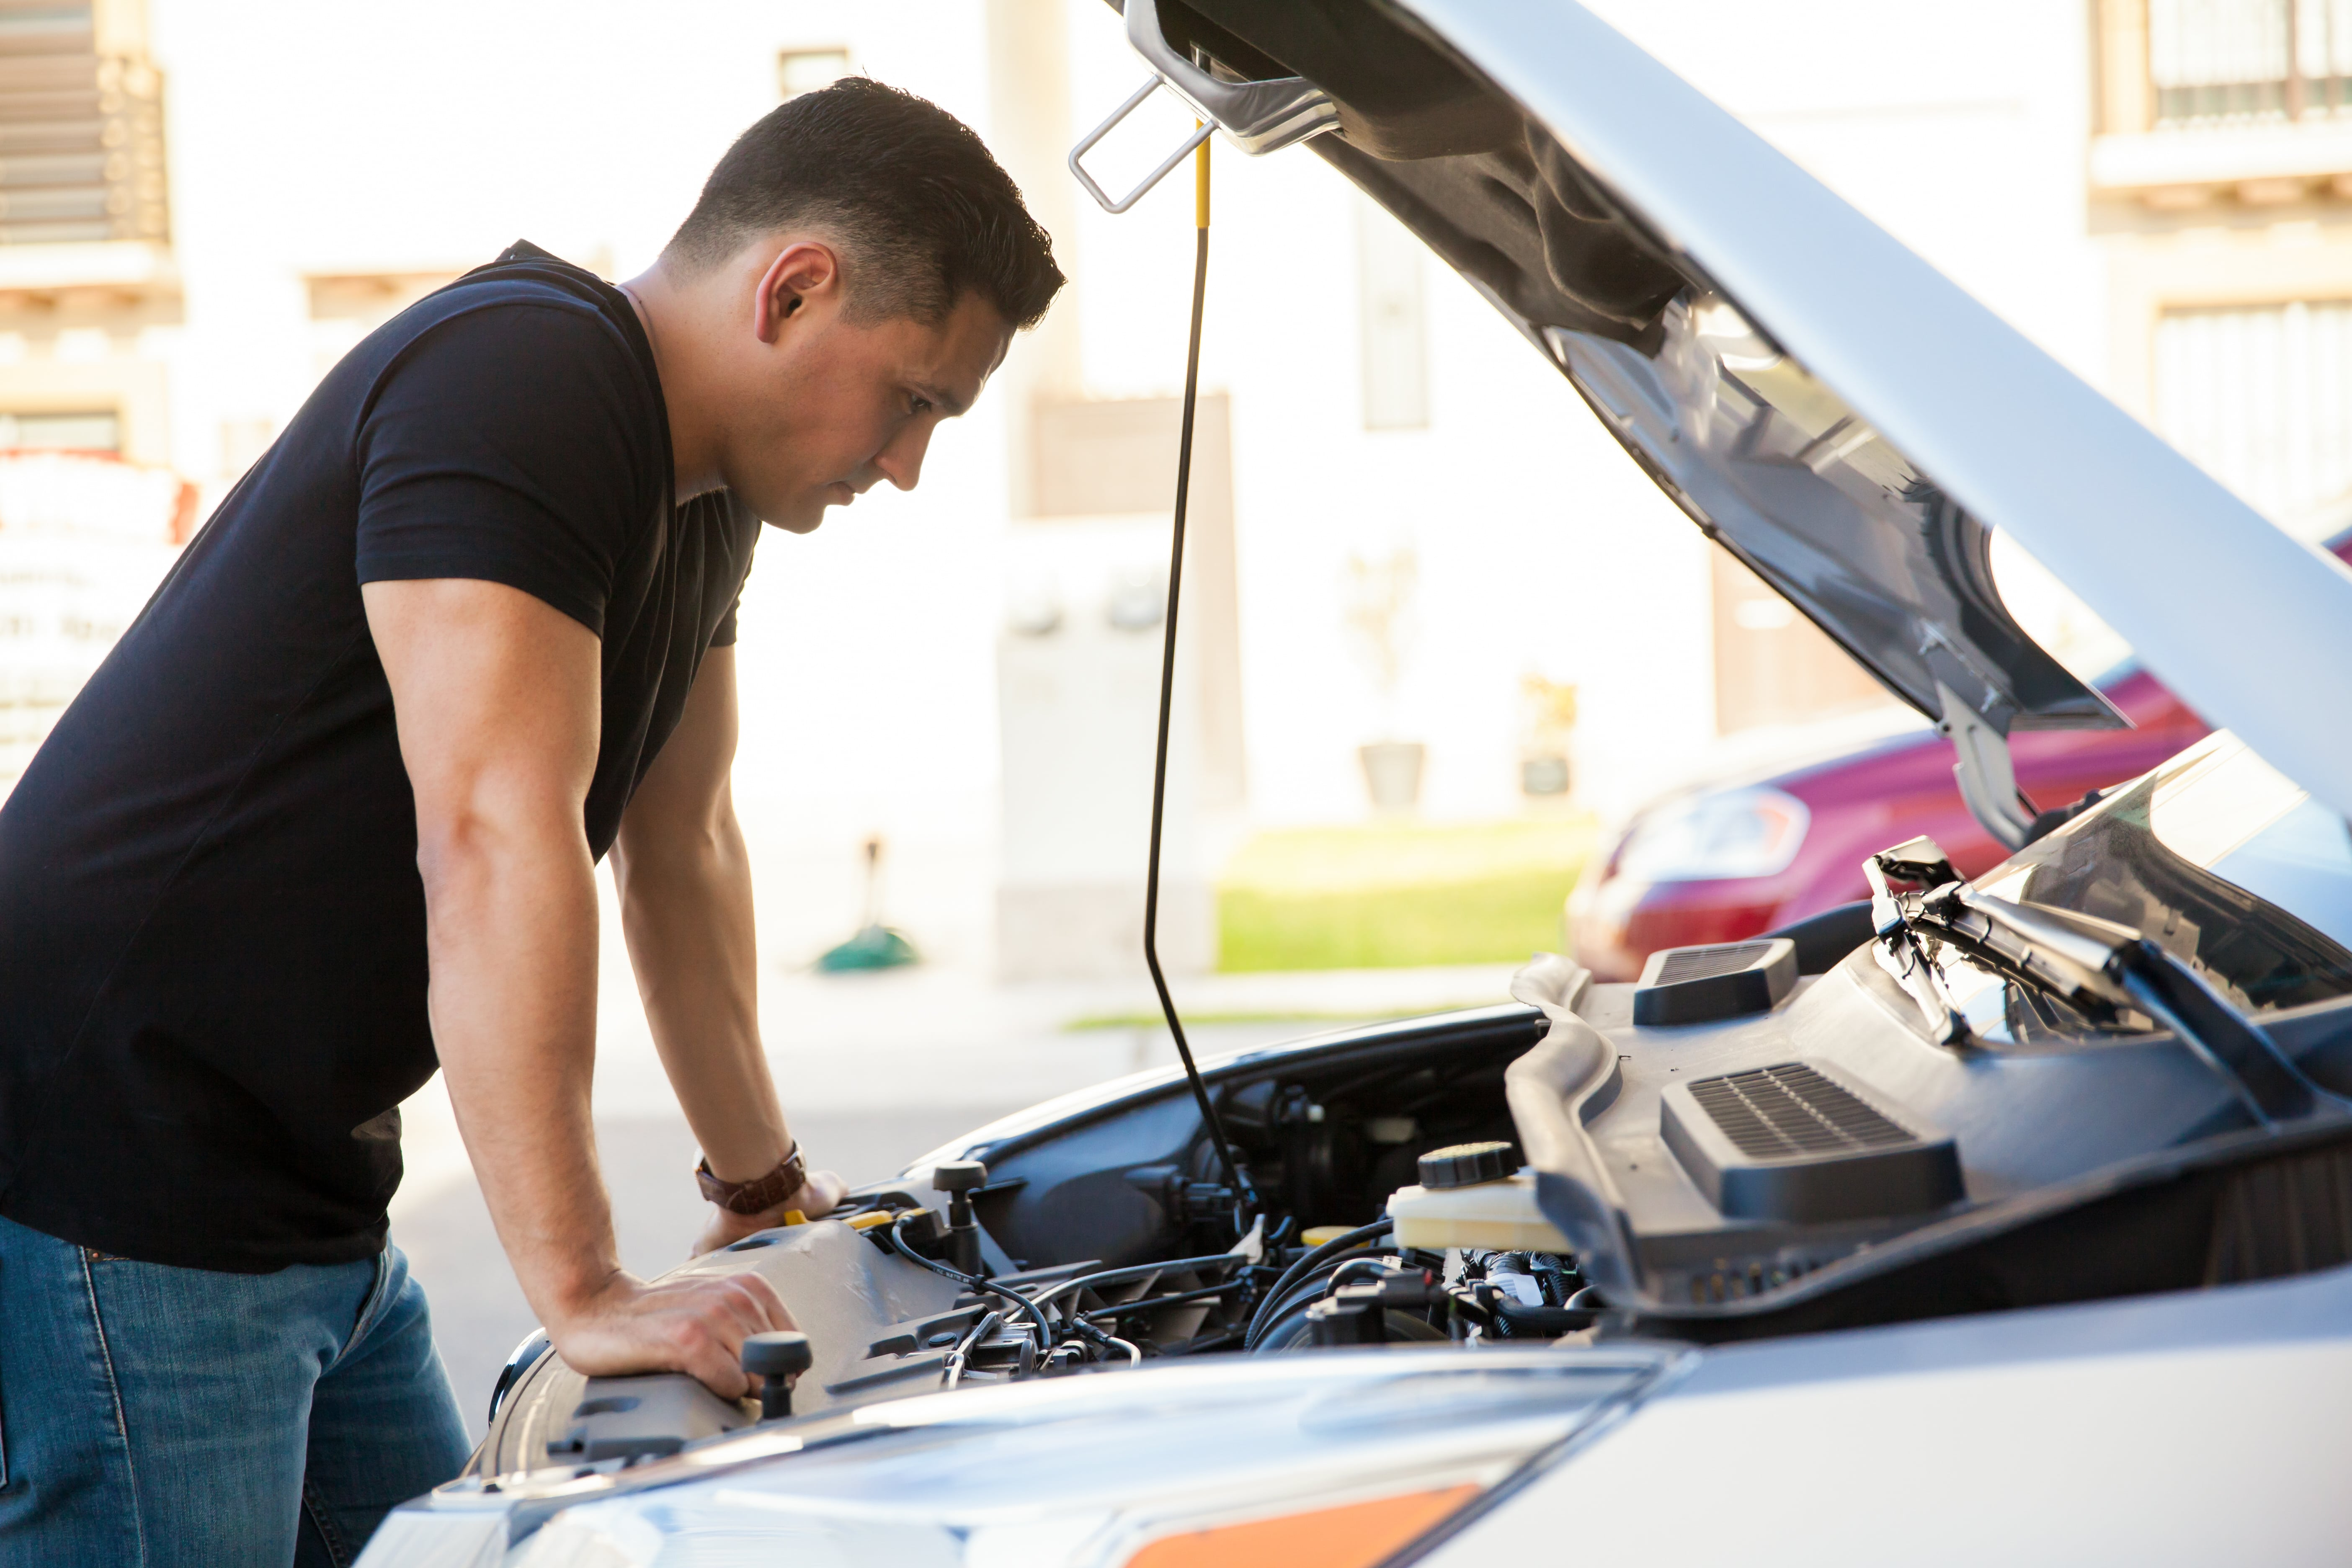 Young man looking at the engine of a broken down car.